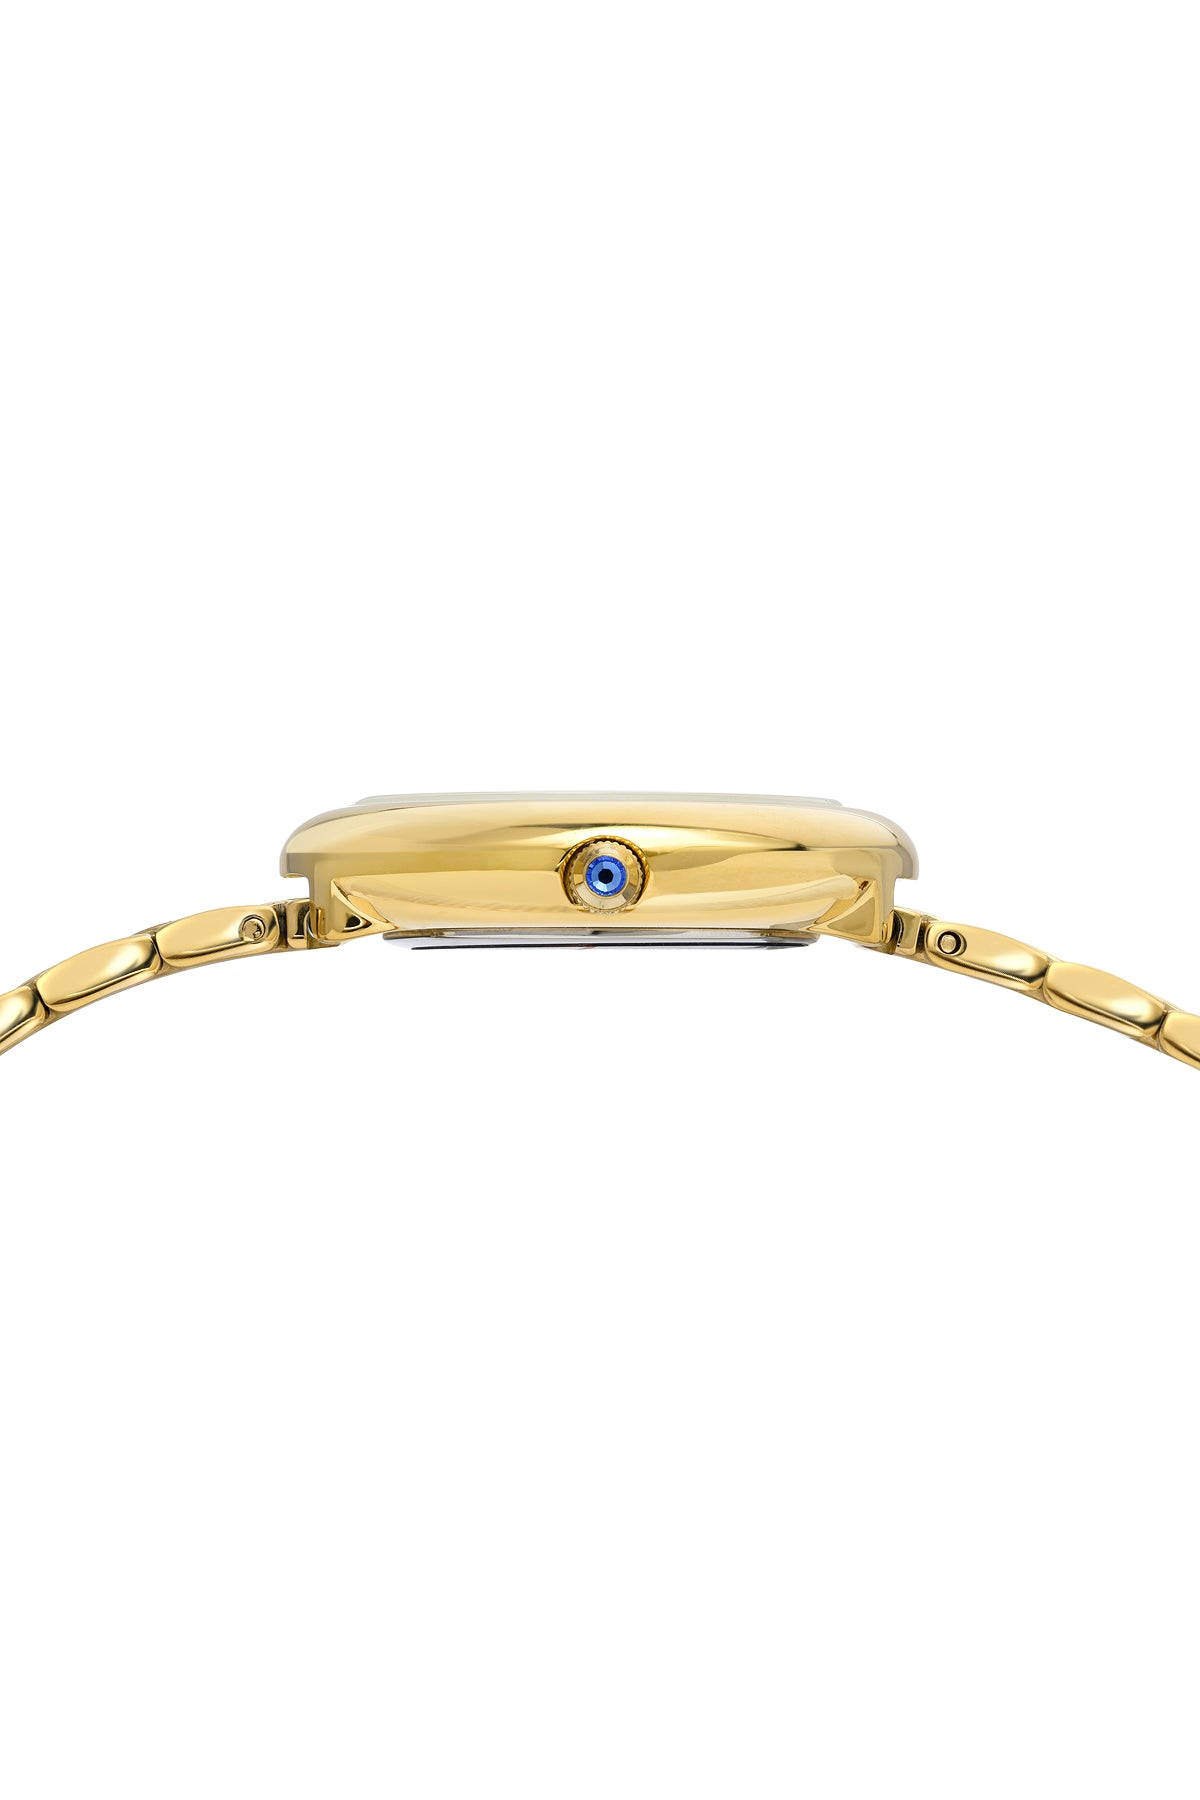 Porsamo Bleu Florentina luxury diamond women's stainless steel watch, blue, gold 902BFLS